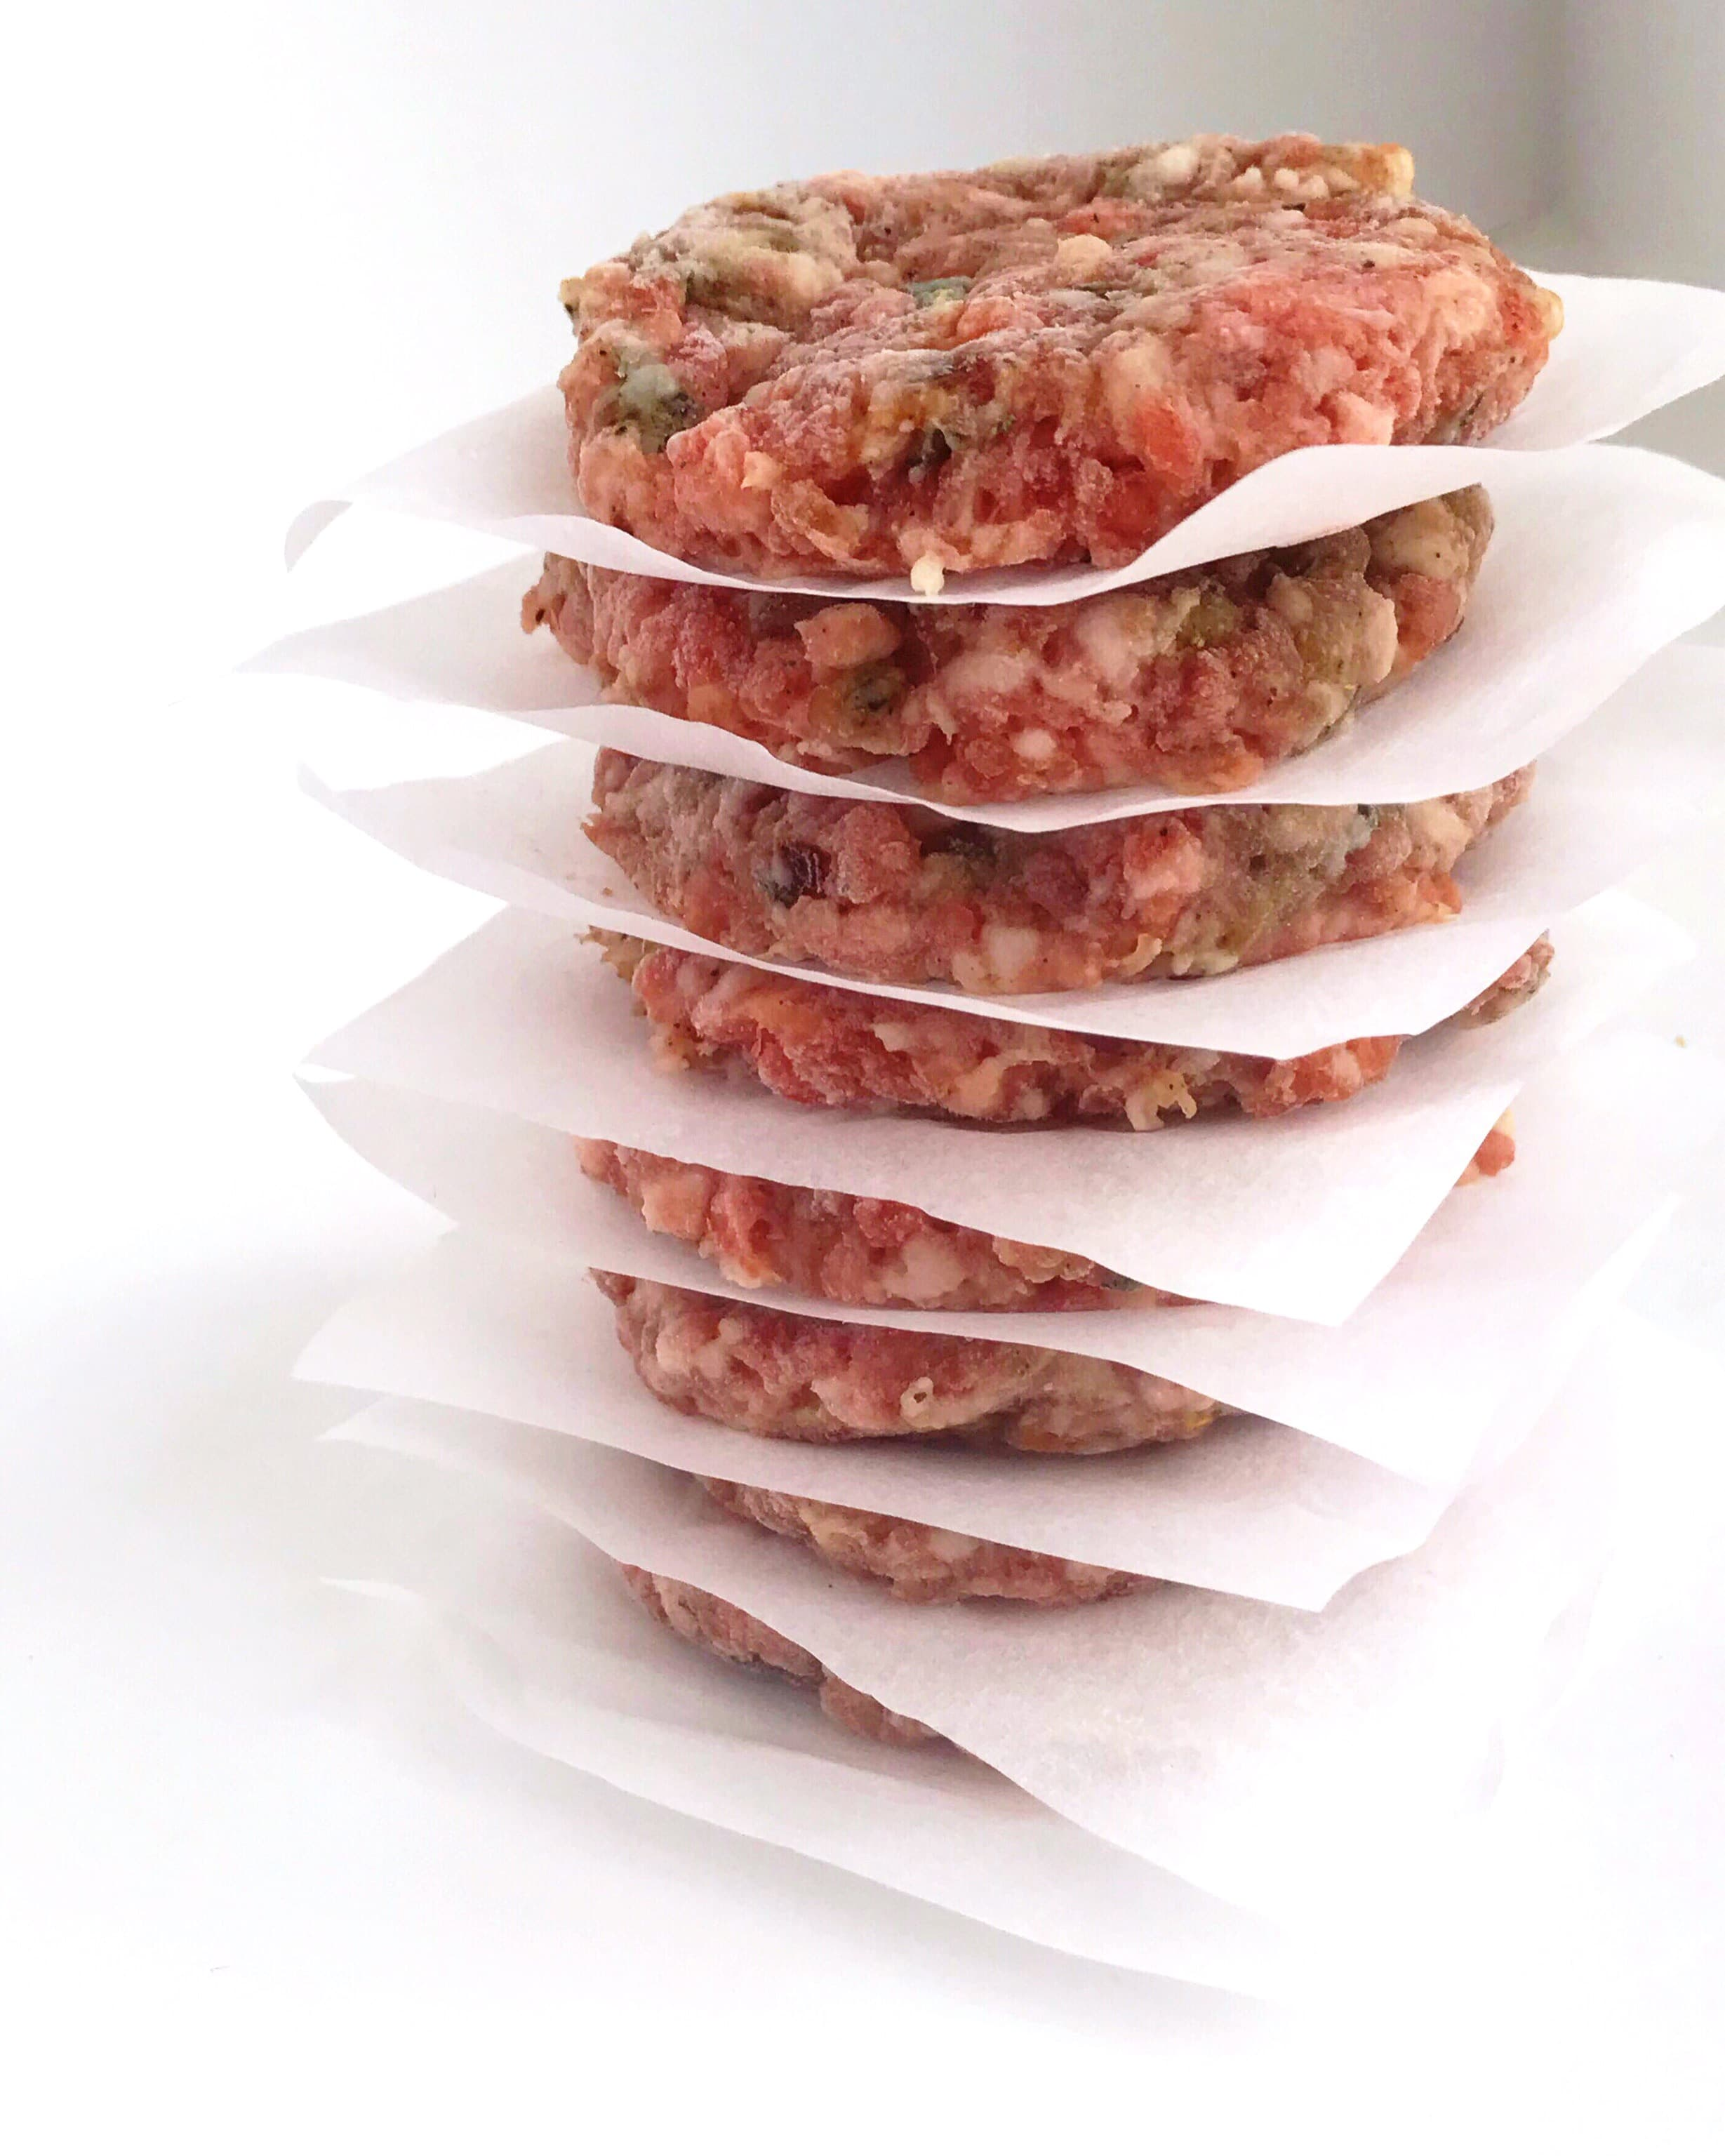 Stack of prepped Maple-Sage Breakfast Patties with parchment paper in between each patty.